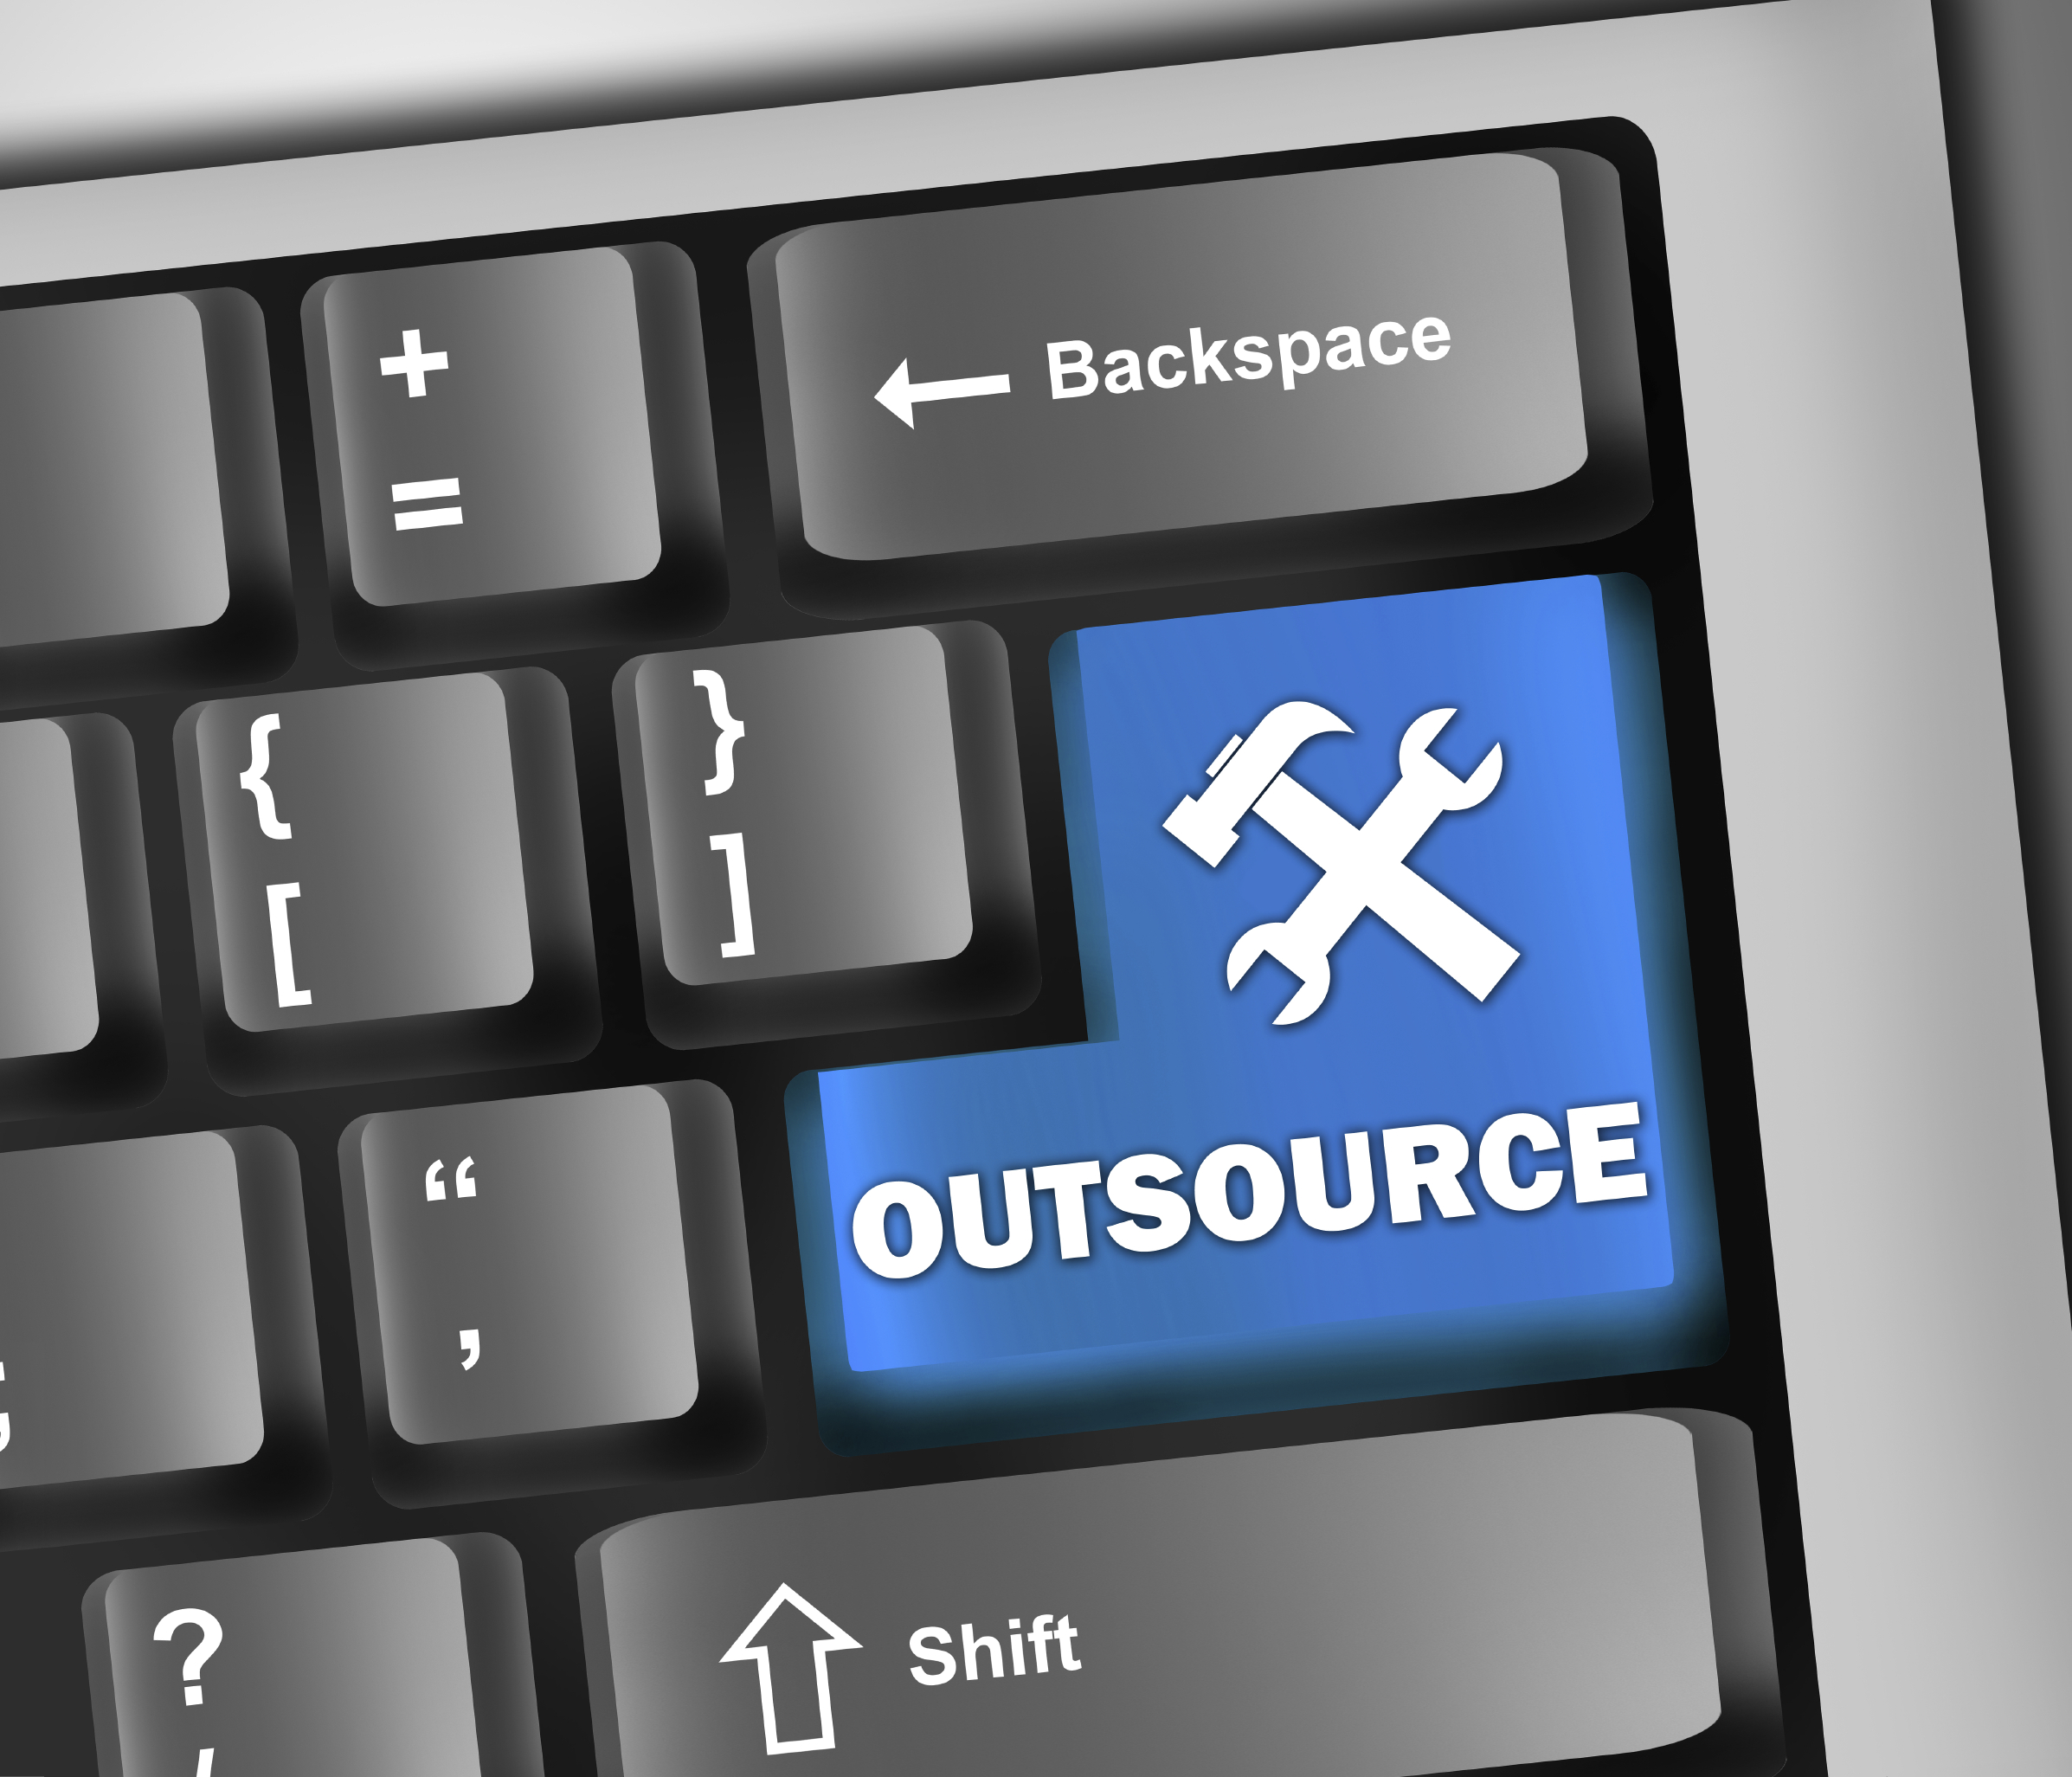 eTestware outsourcing; remote or near?